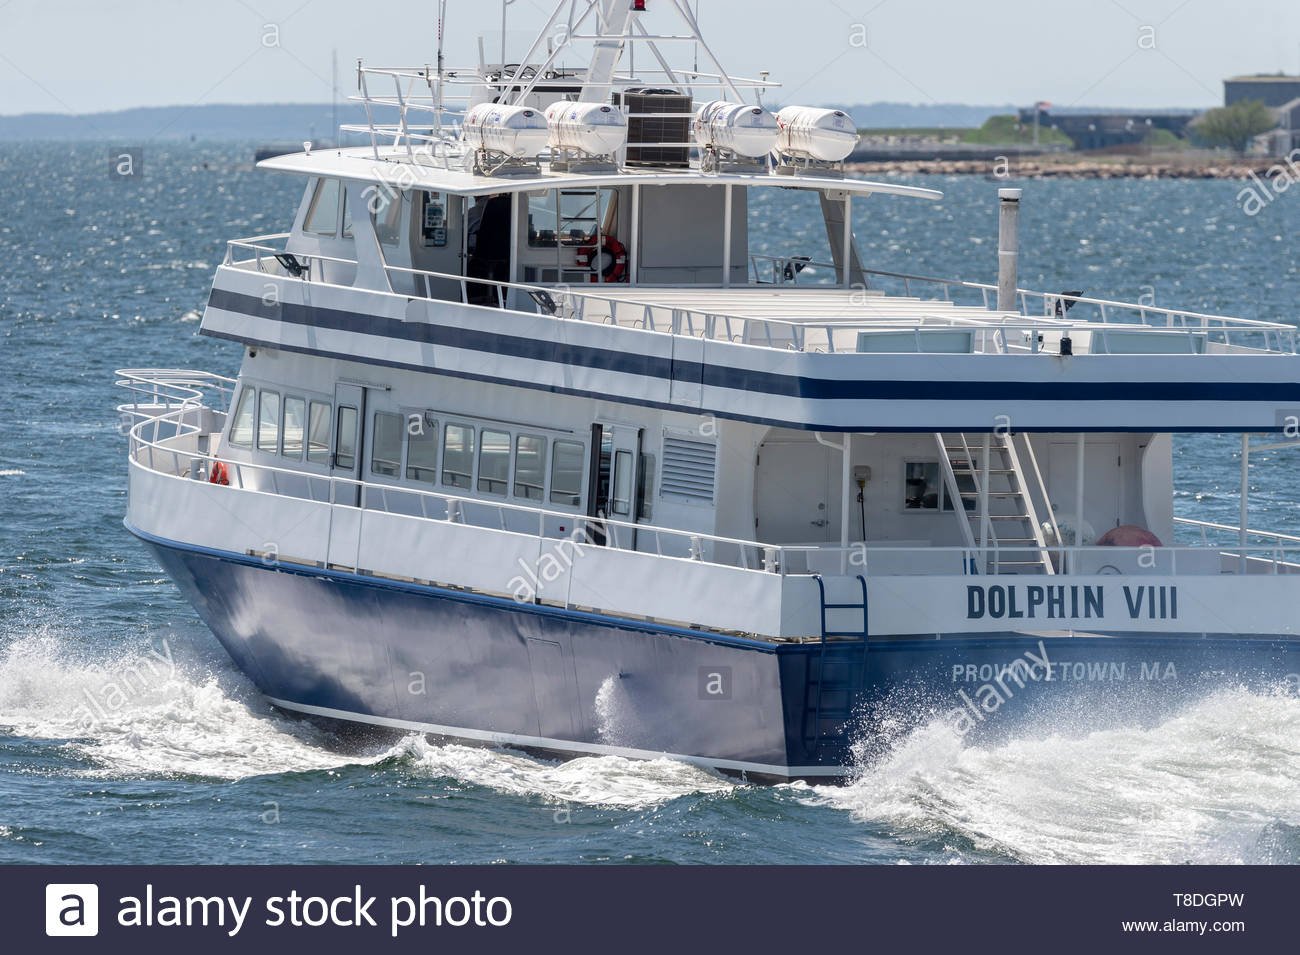 Fairhaven, Massachusetts, USA - May 8, 2019: Whale watching boat Dolphin VIII heading back to home port in Provincetown after a trip to Fairhaven - Stock Image